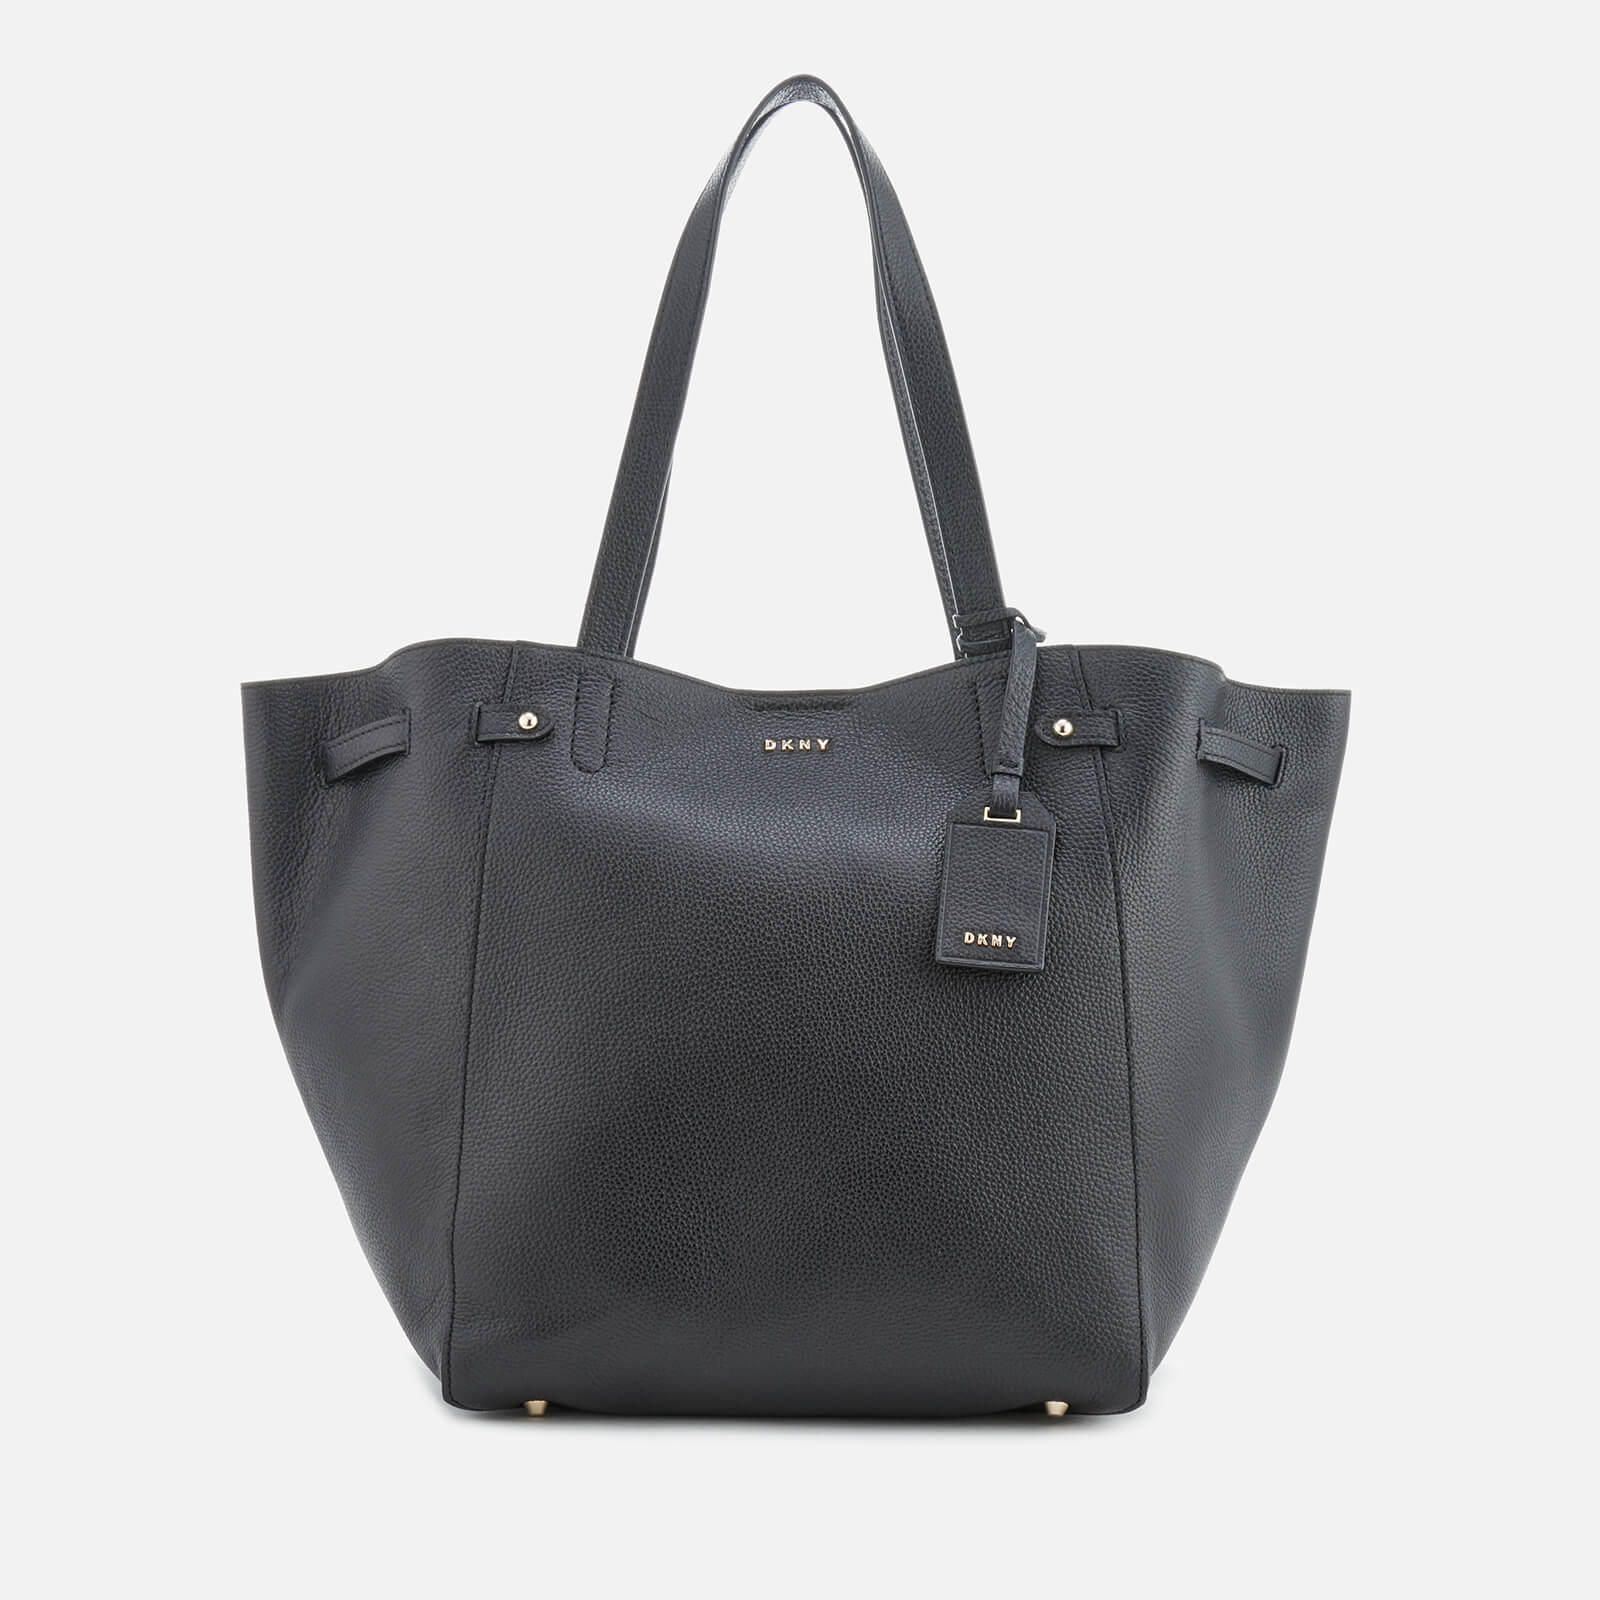 afaaa11efe65 Large Black Leather Tote Bag Uk | The Shred Centre